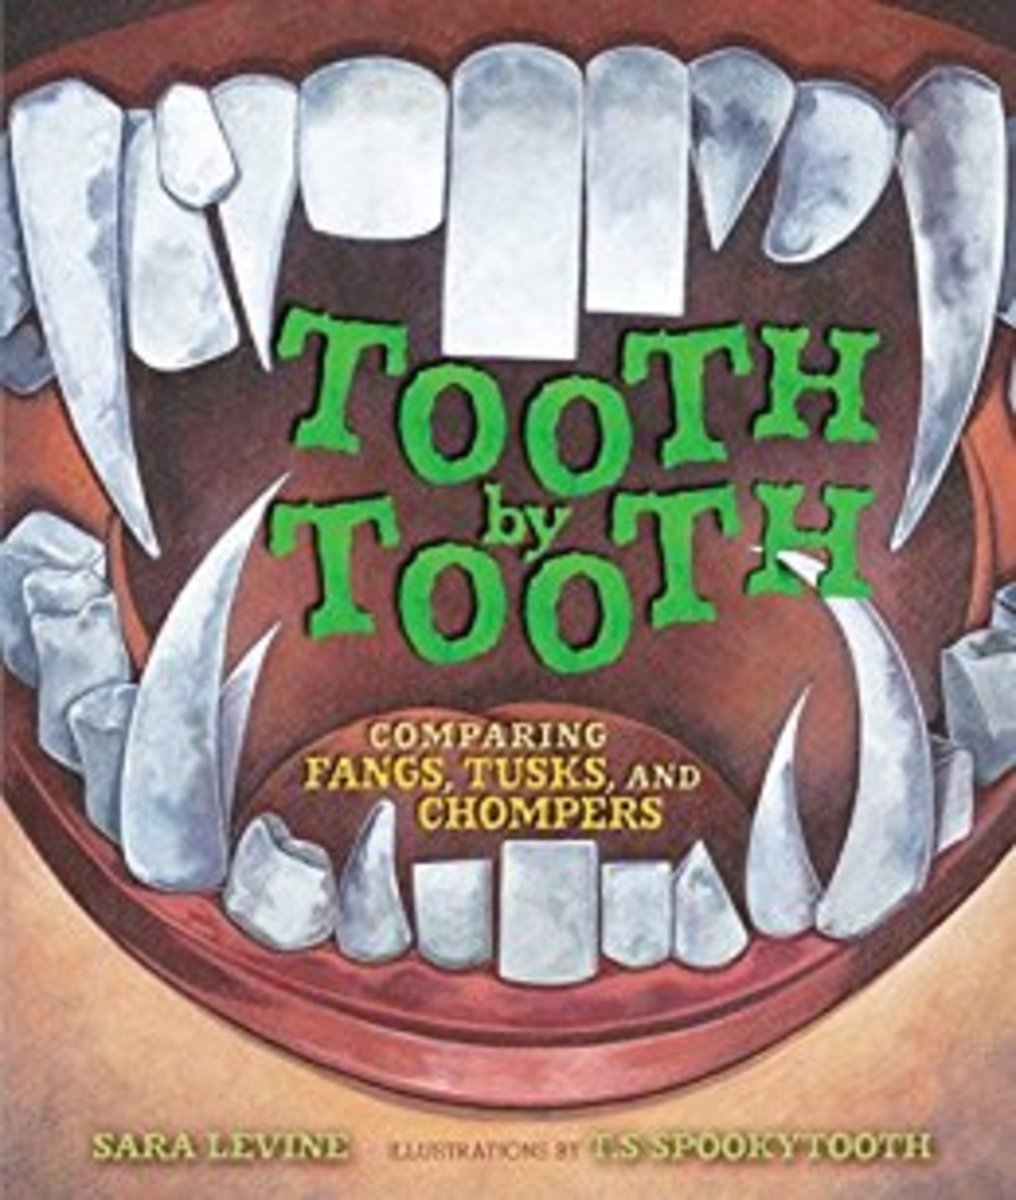 Tooth by Tooth: Comparing Fangs, Tusks, and Chompers by Sara C. Levine - Images are from amazon.com.